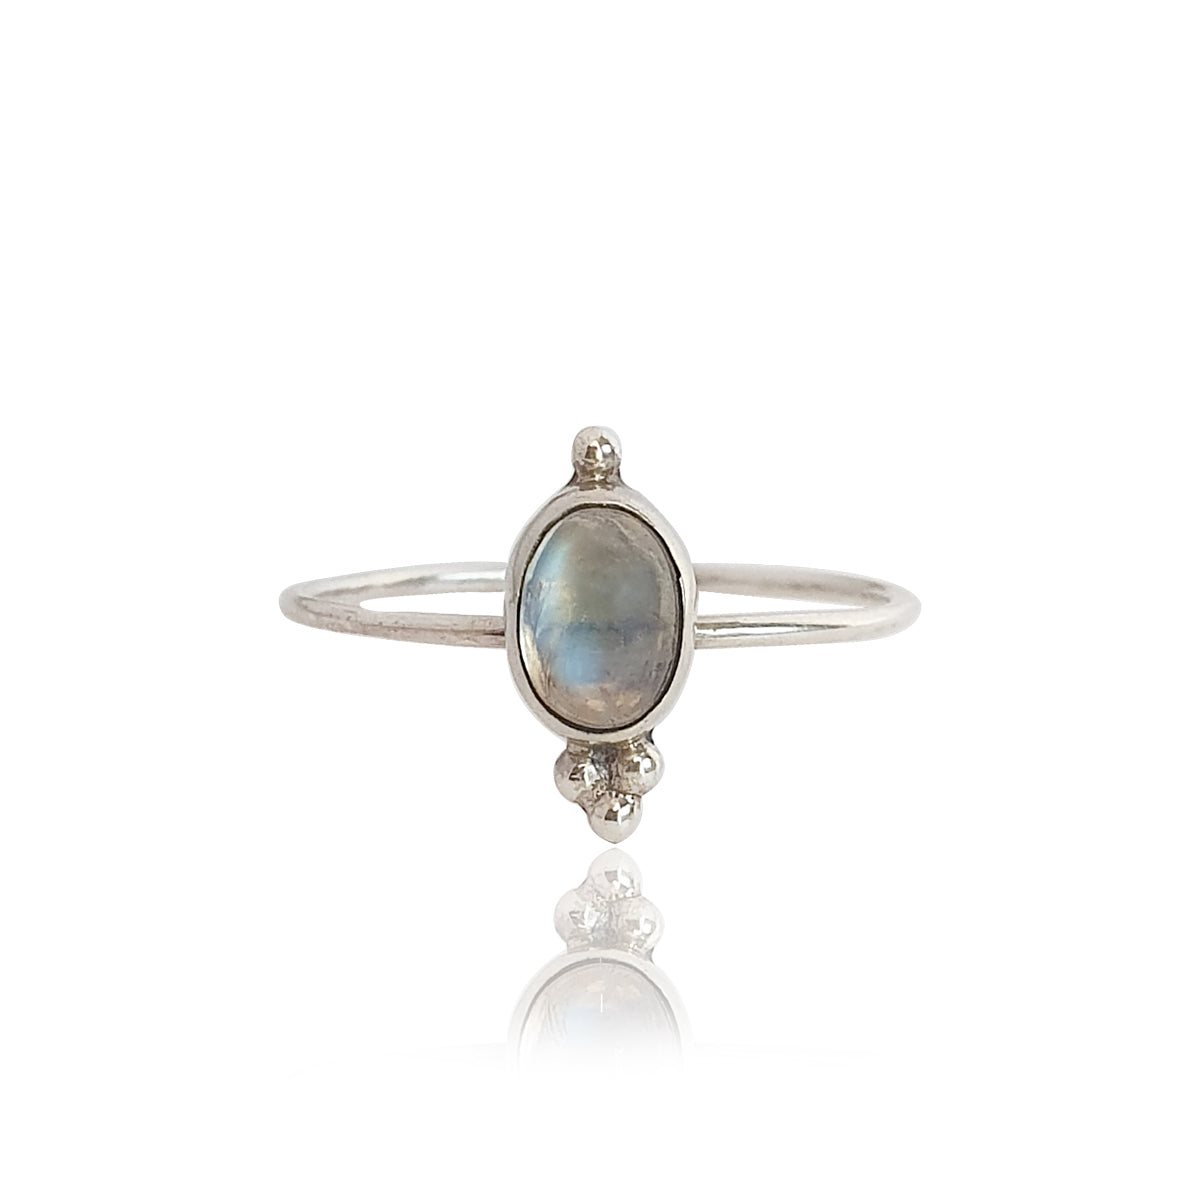 Kano ring in moonstone